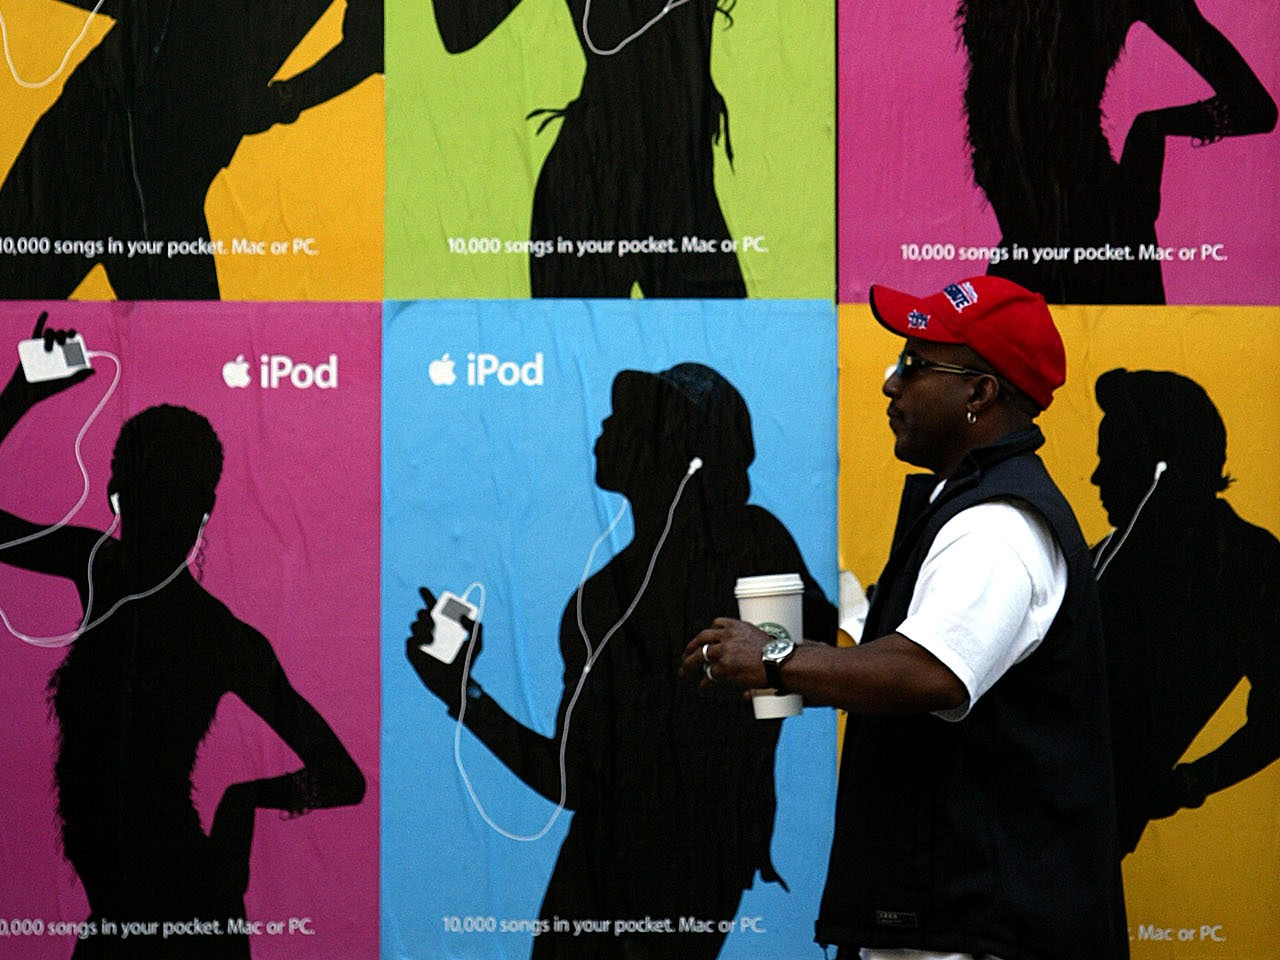 Apple iPod advertisement